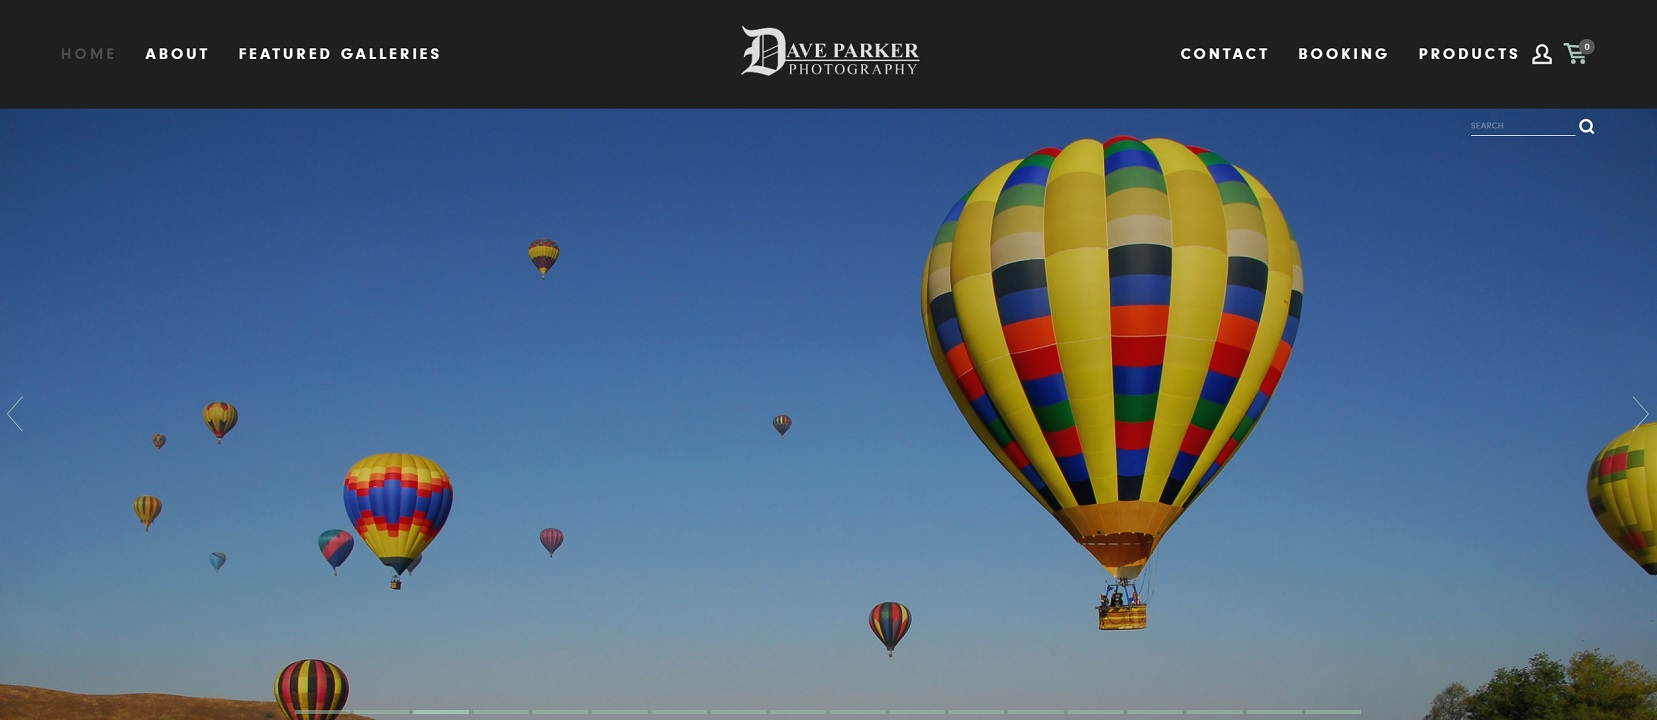 The main page of the client's website.